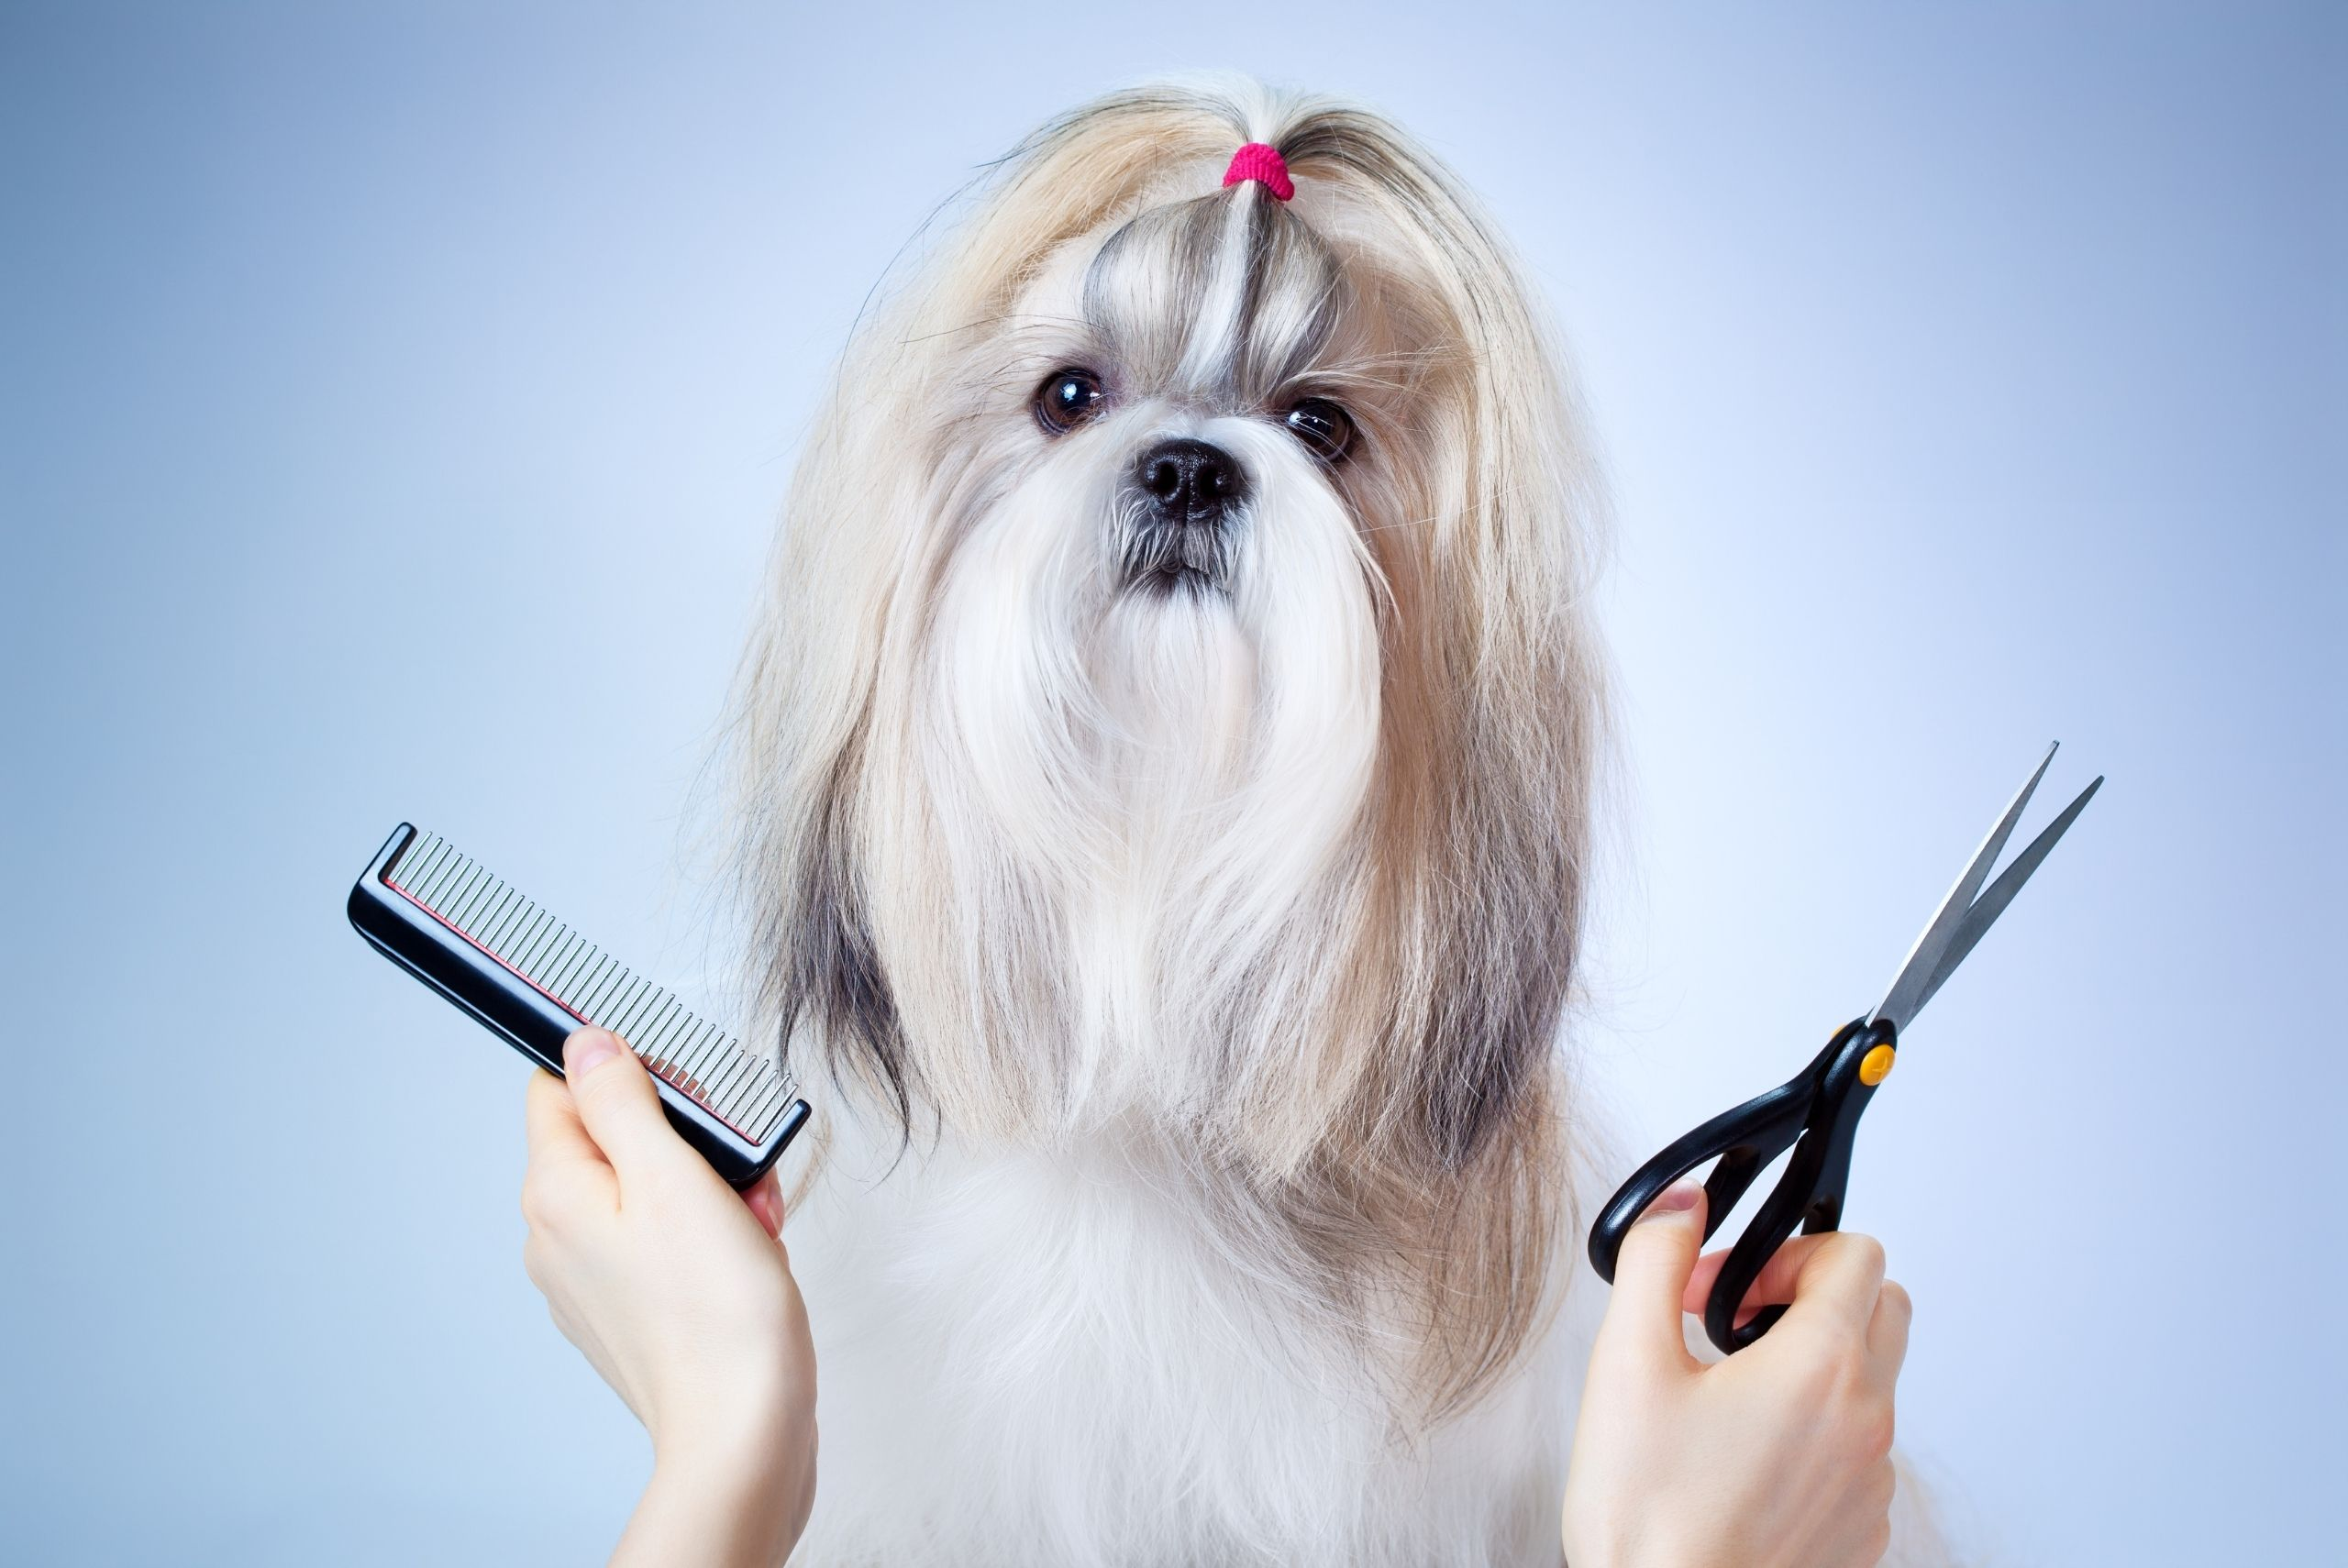 groom-your-dog-at-home-pick-the-right-tools